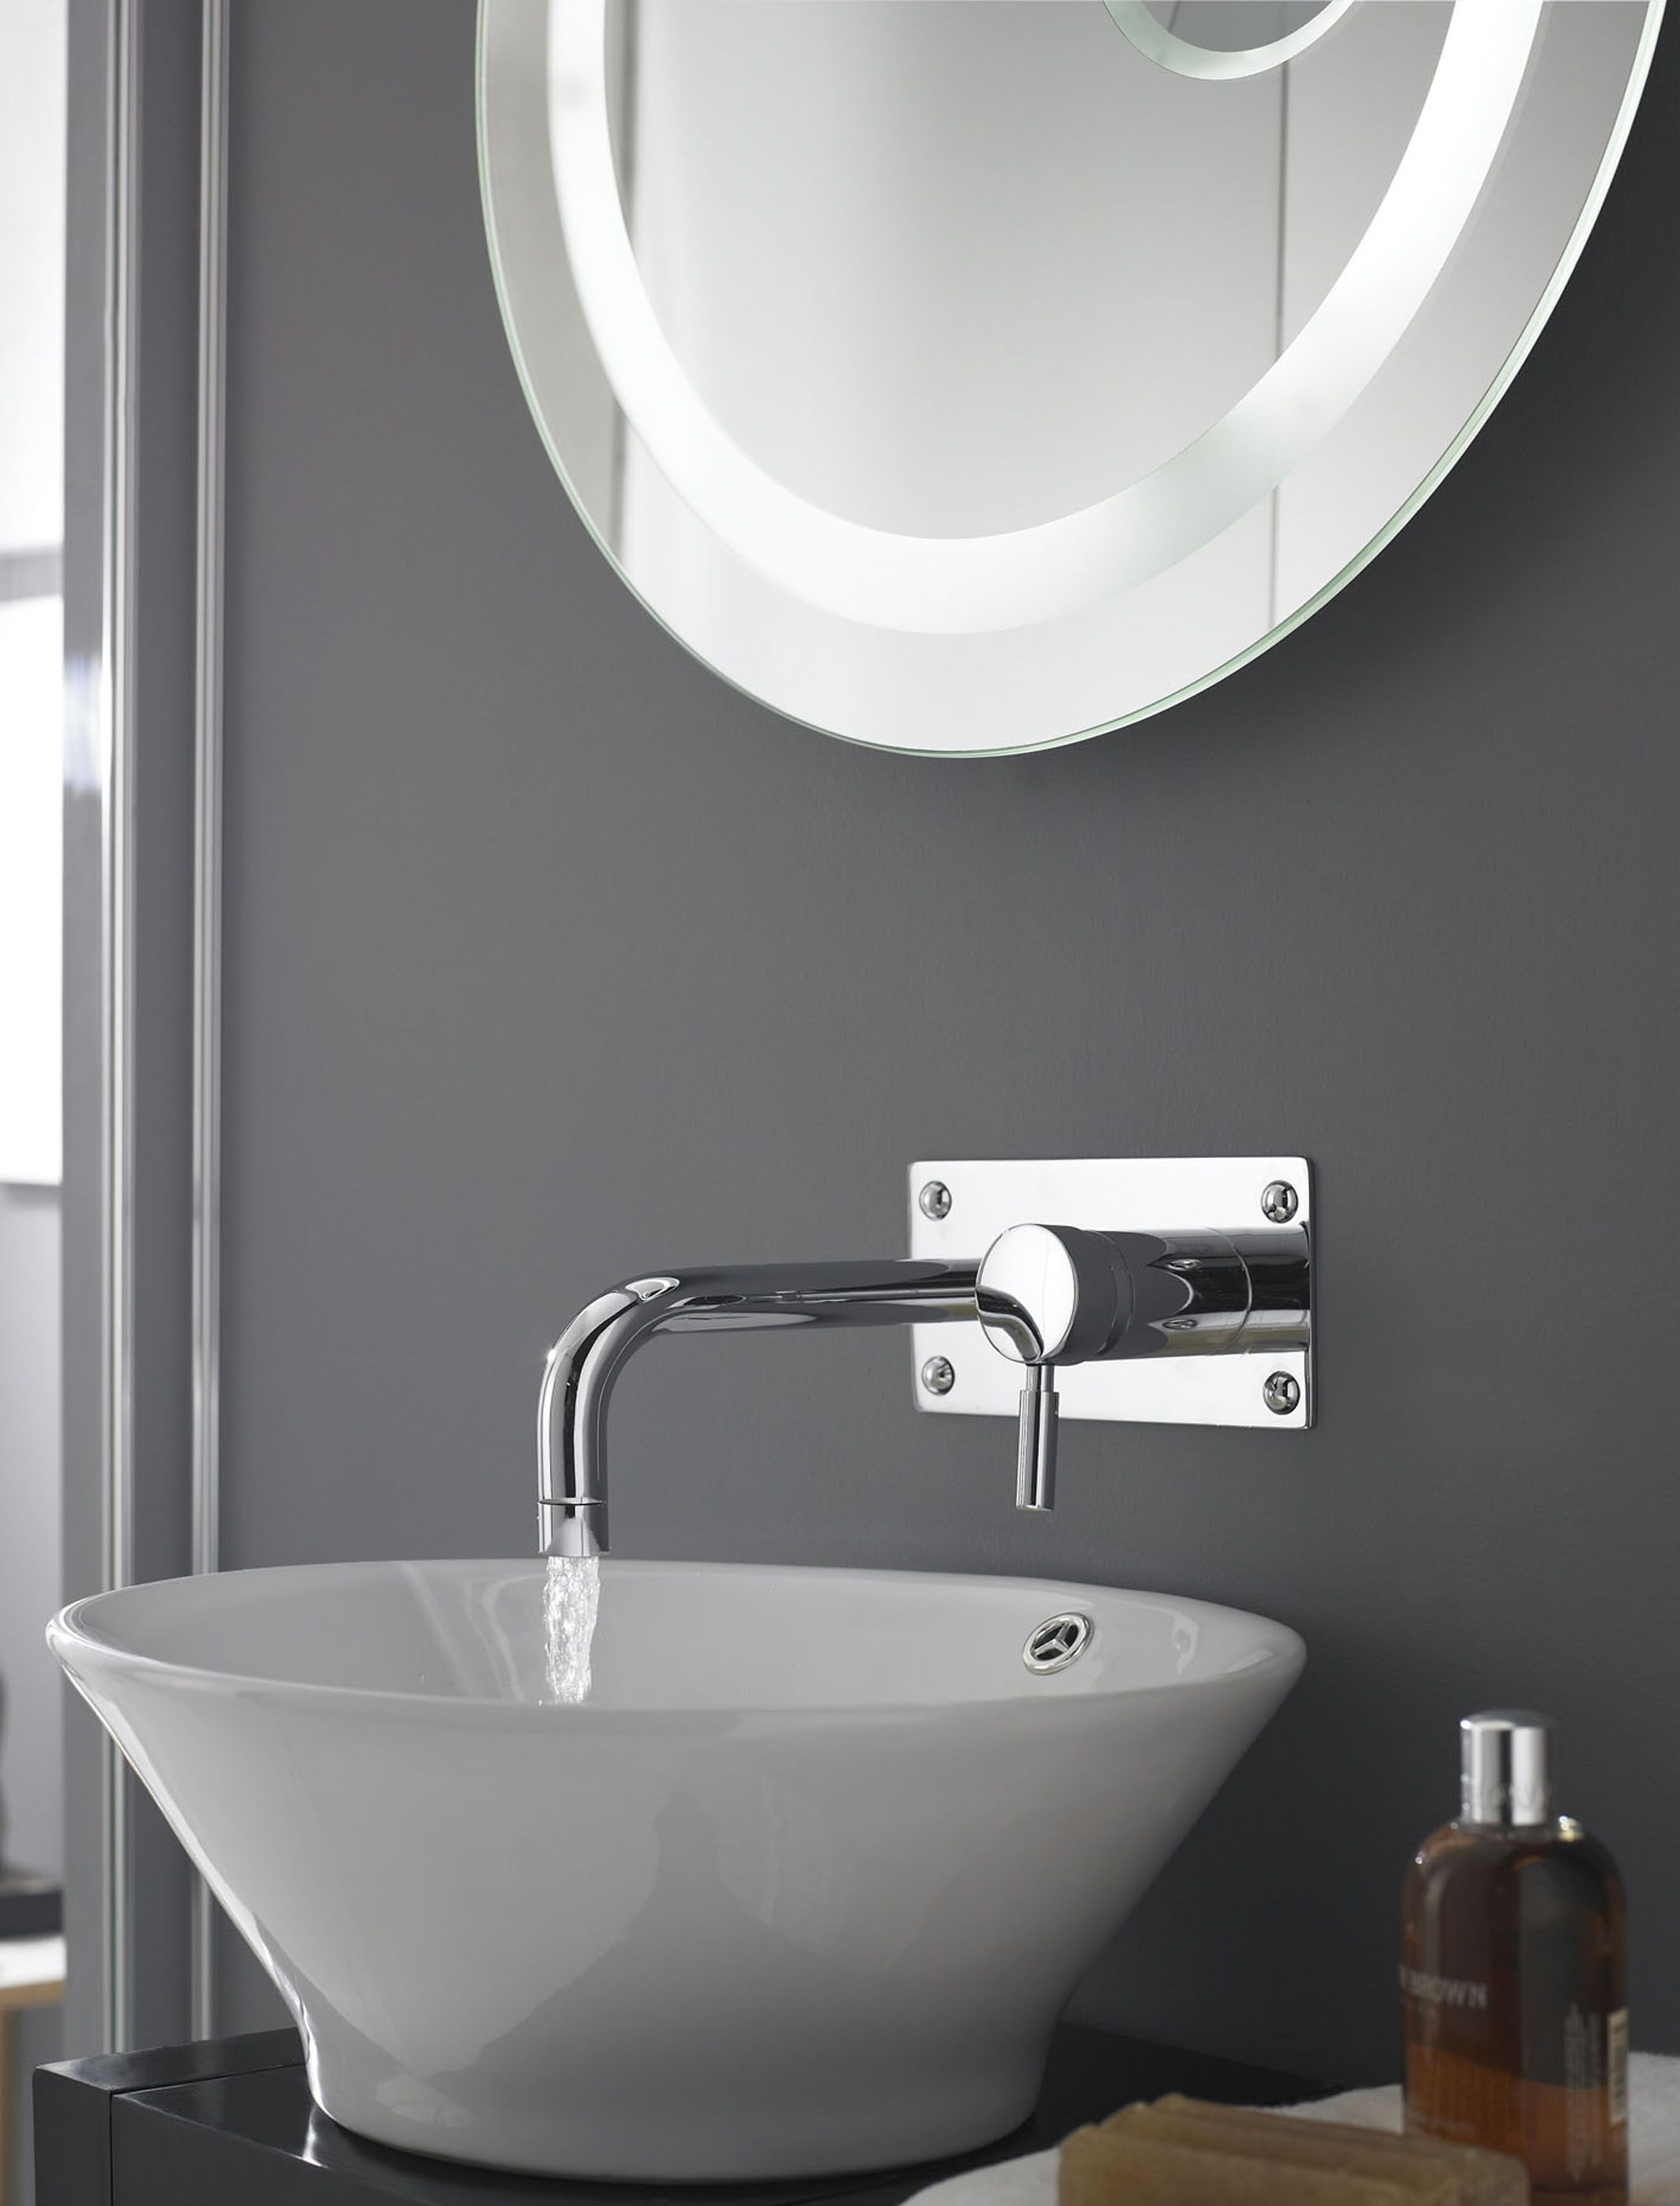 Pin by Victorian Plumbing on Basin Inspiration | Pinterest | Wall ...